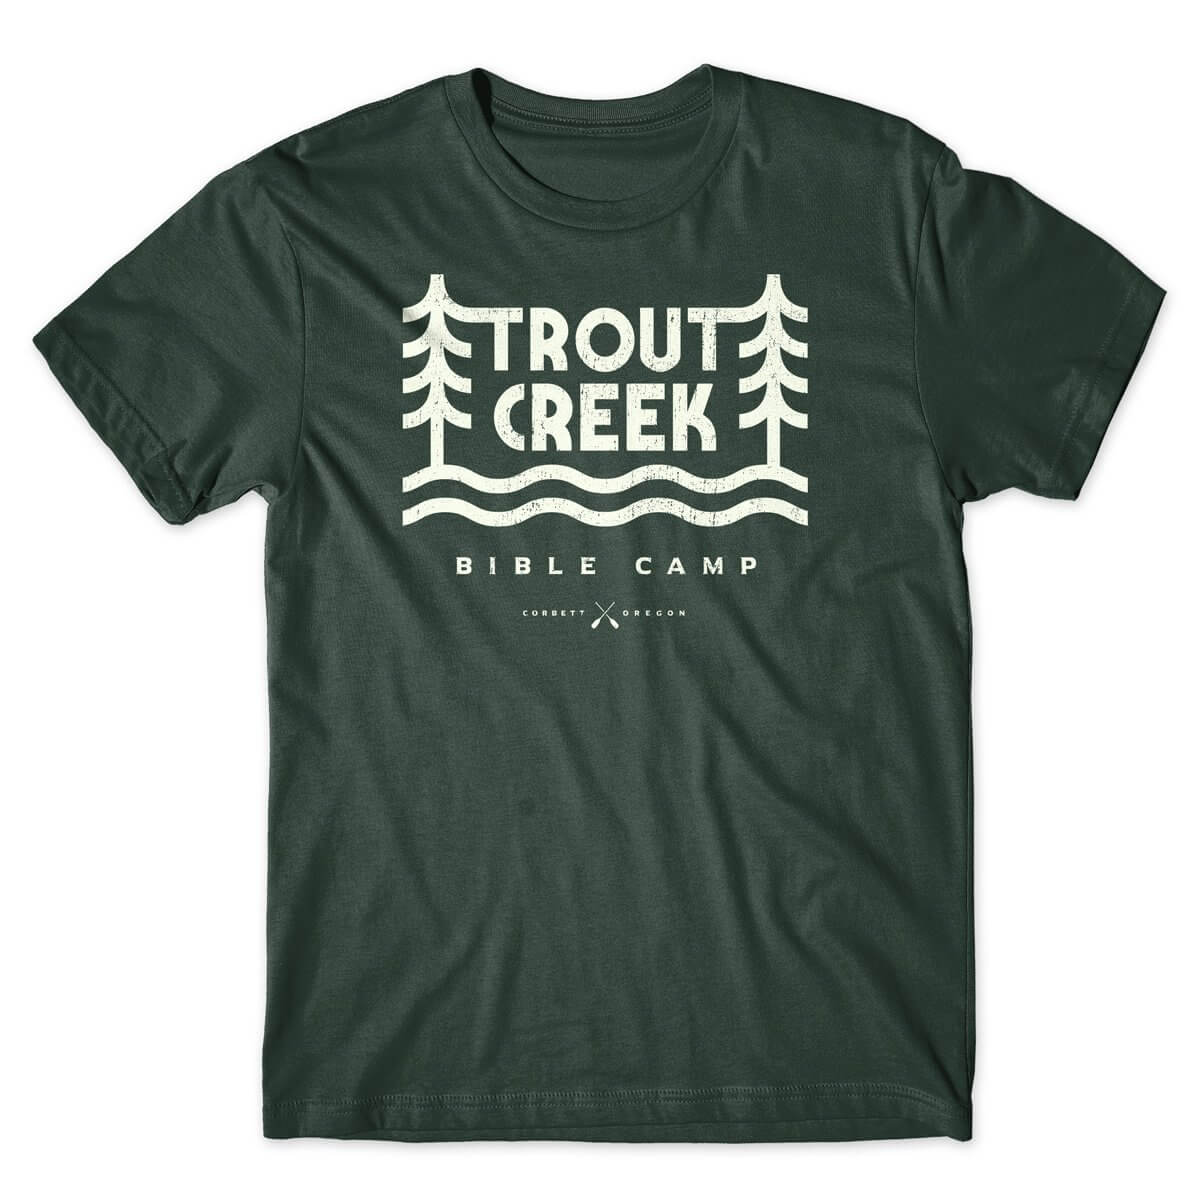 Local Seed Co. t-shirt design